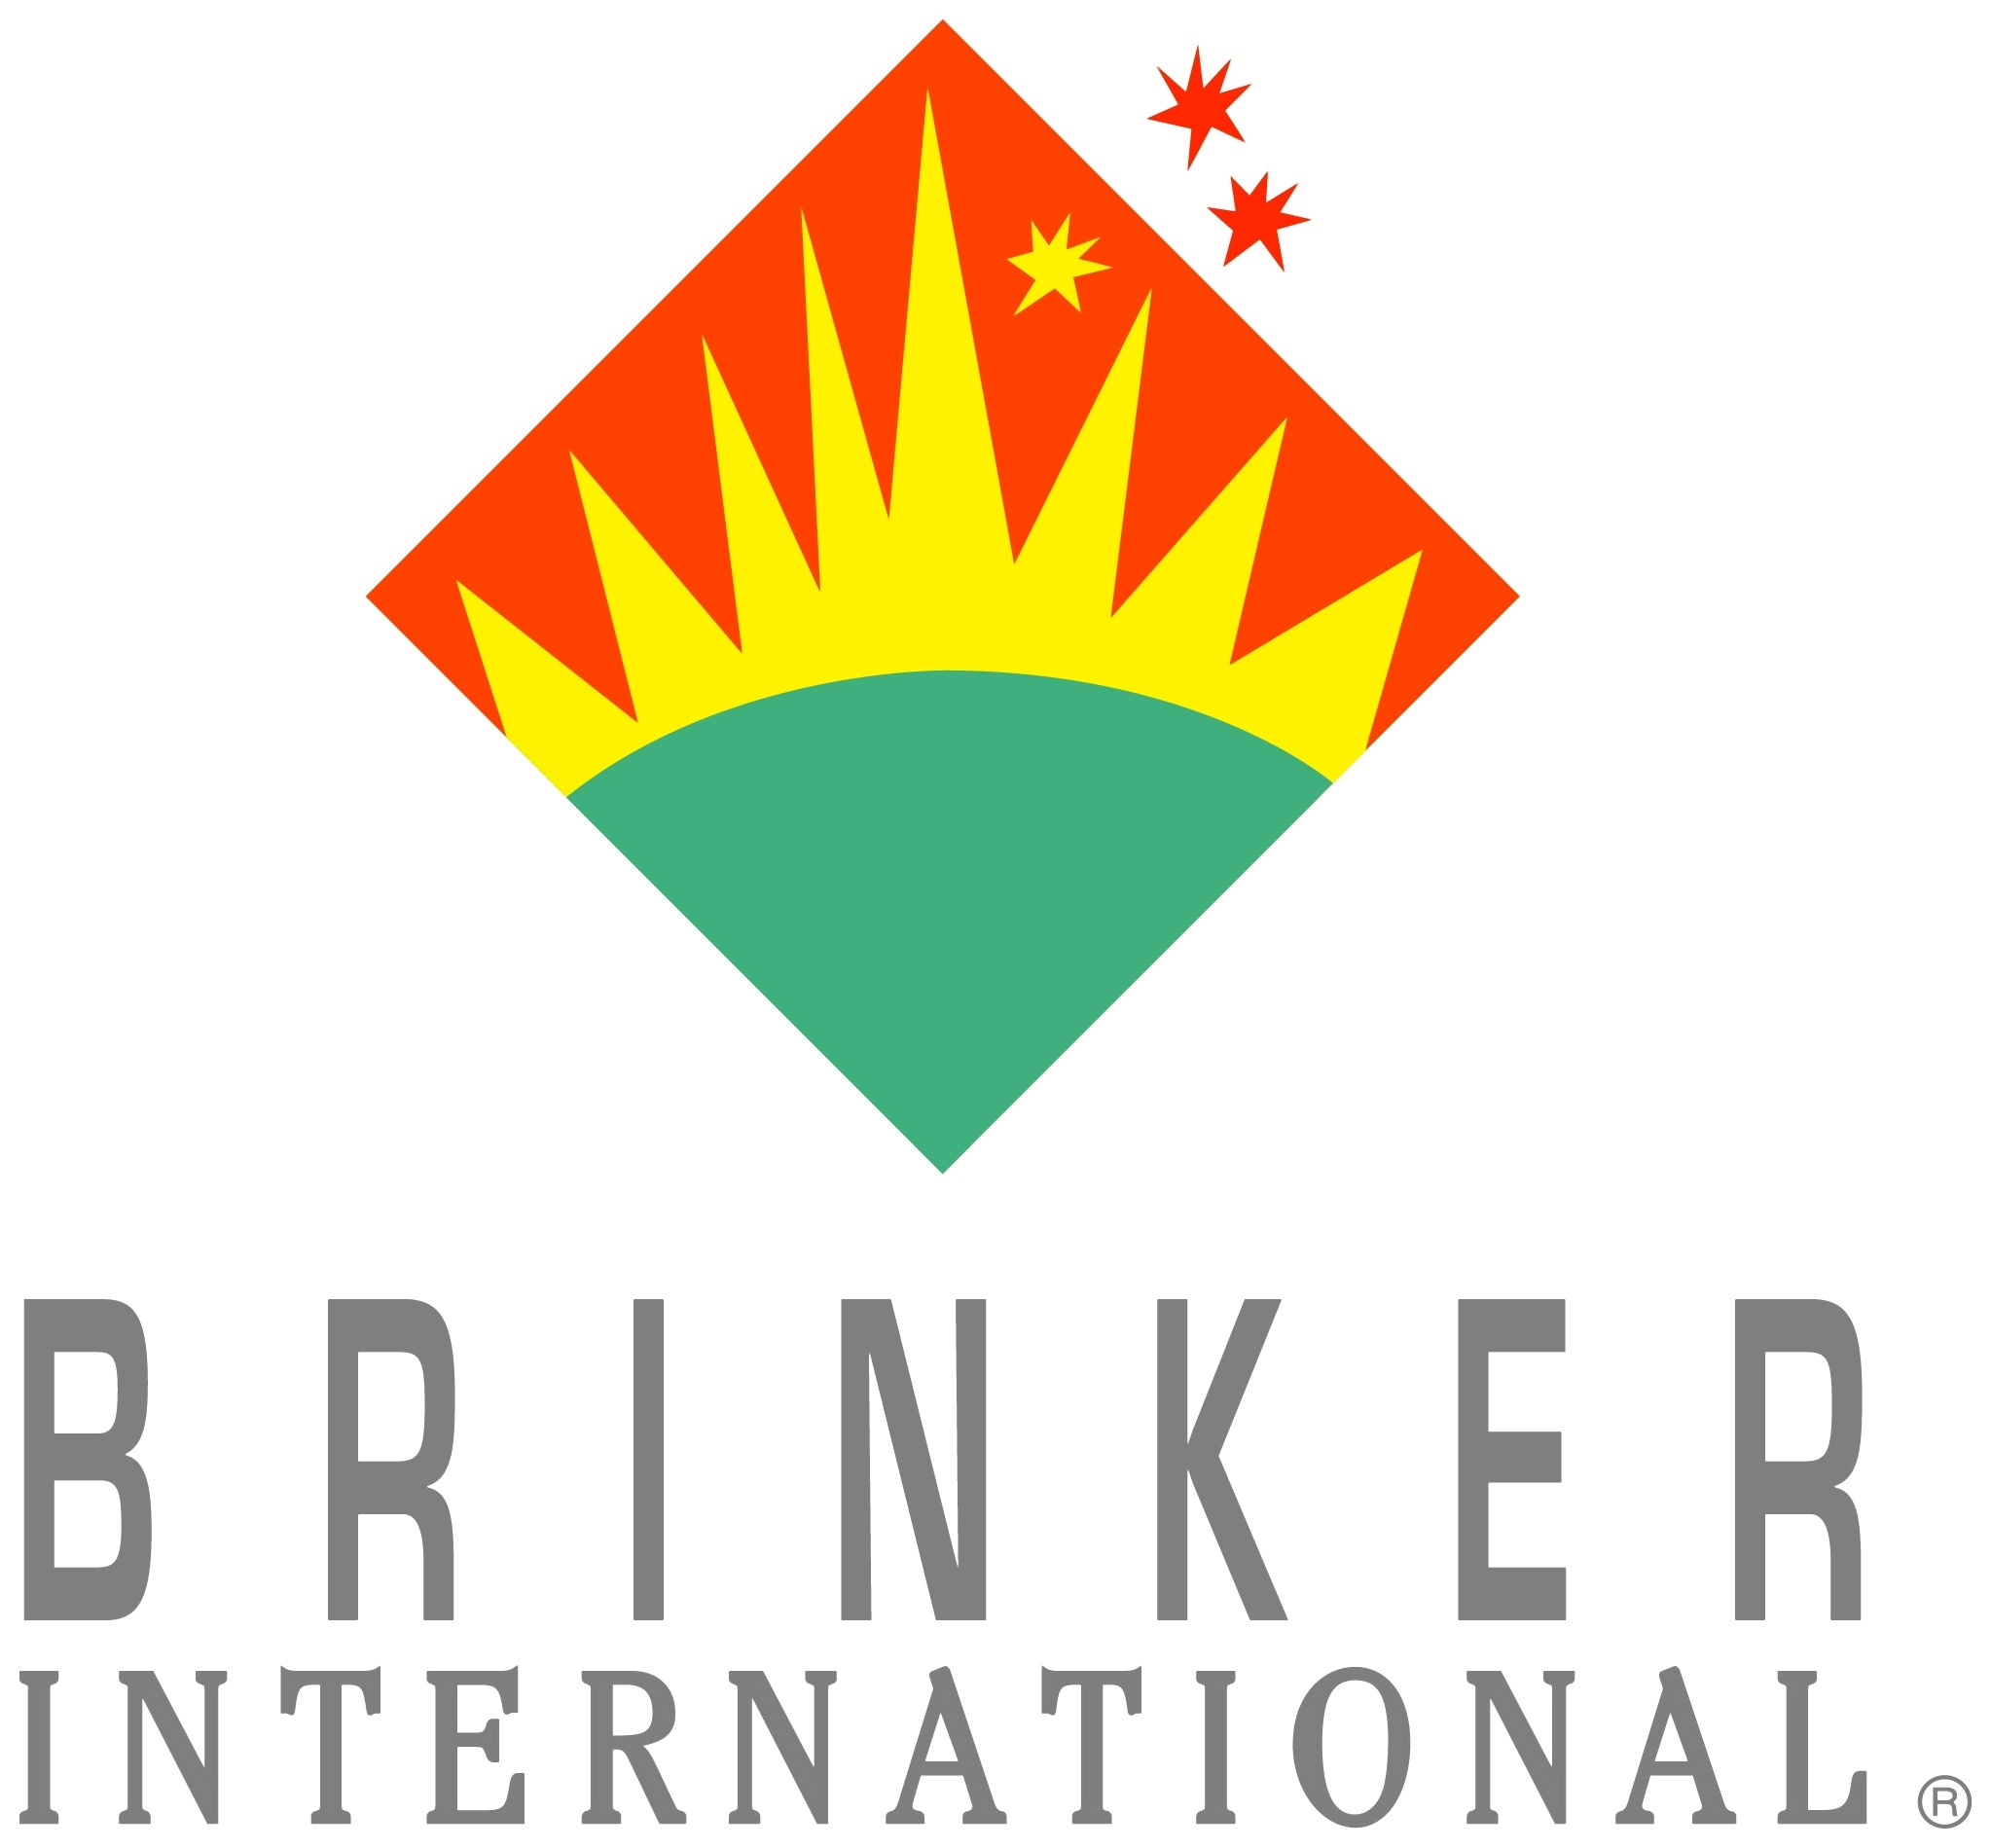 Brinker International Inc.